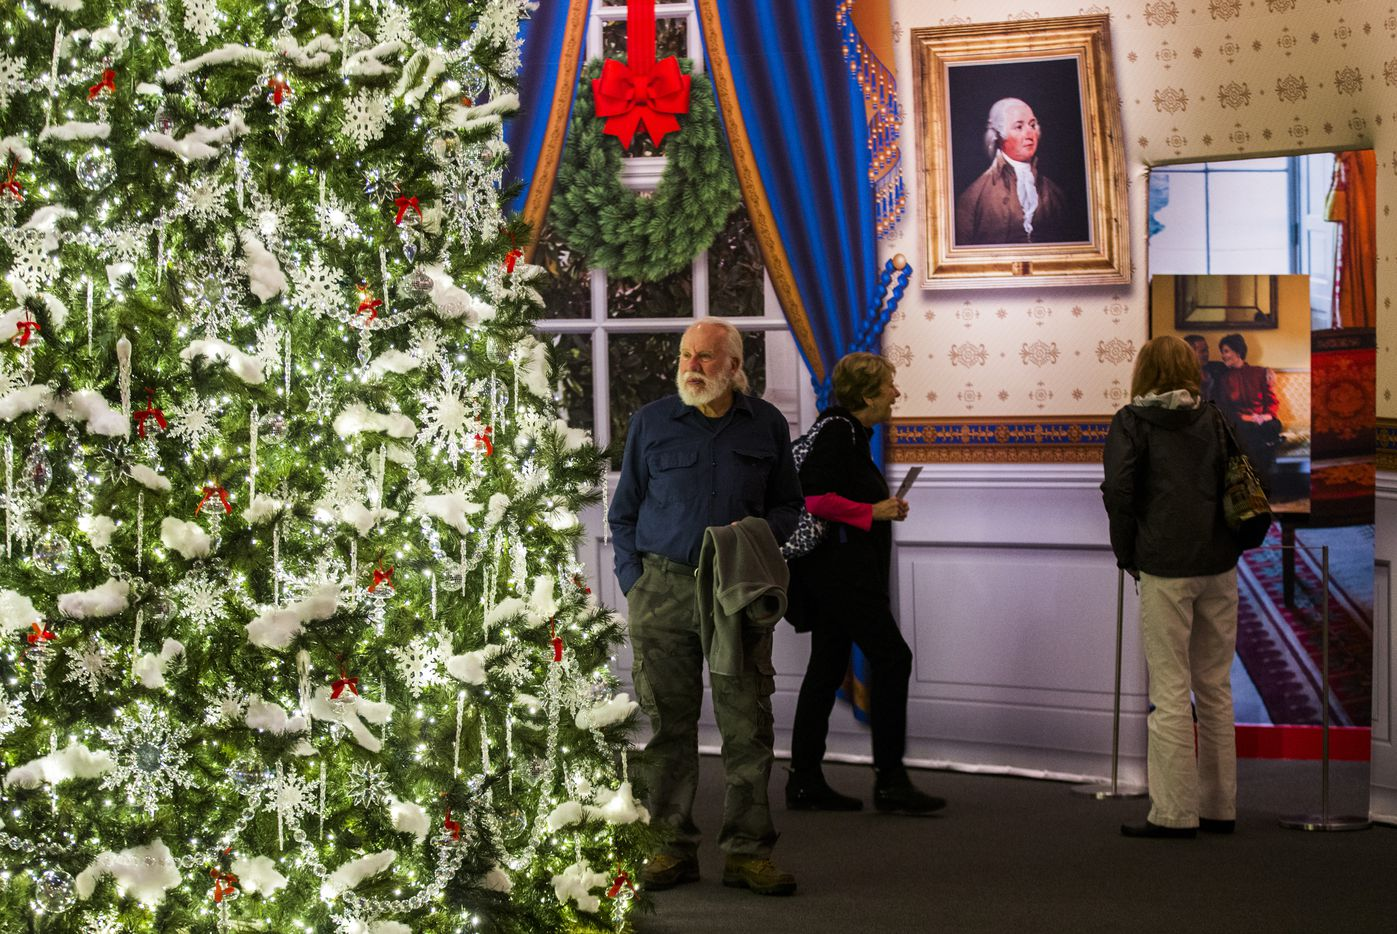 Visitors explore the Blue Room at a Christmas exhibit at The George W. Bush Presidential Center and Library on Thursday, November 15, 2018 on the SMU campus in Dallas. This year's theme is Deck the Halls and Welcome All: Christmas at the White House 2006. (Ashley Landis/The Dallas Morning News)